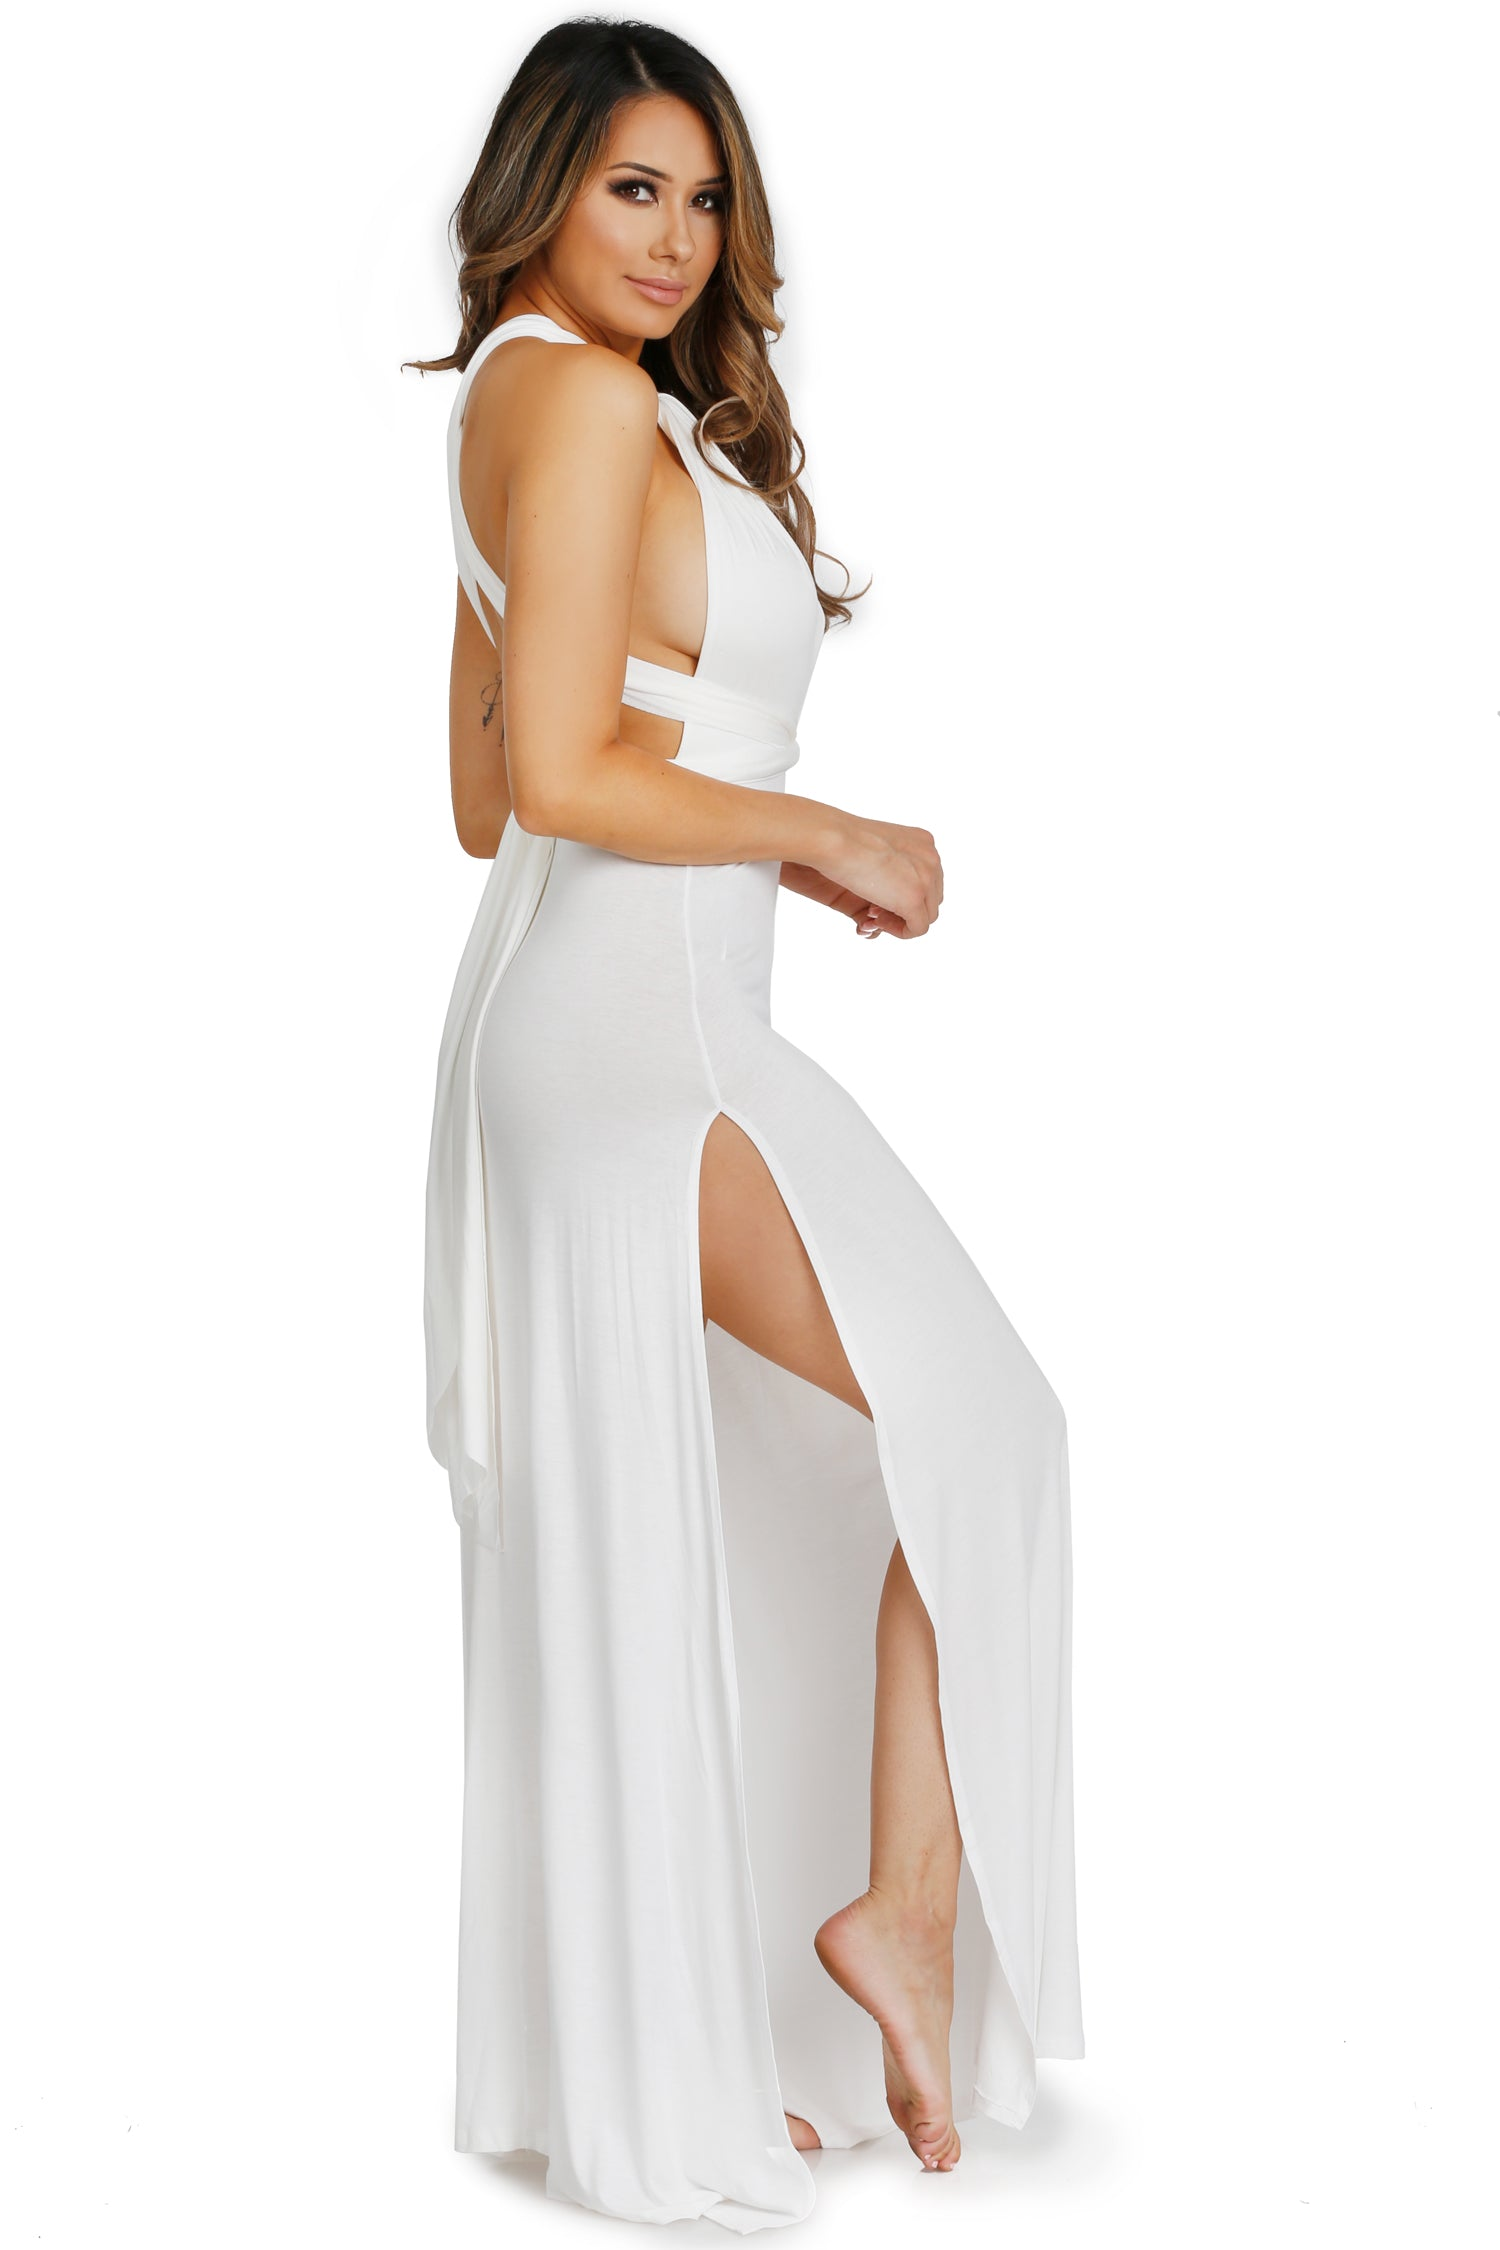 CANCUN WRAP DRESS